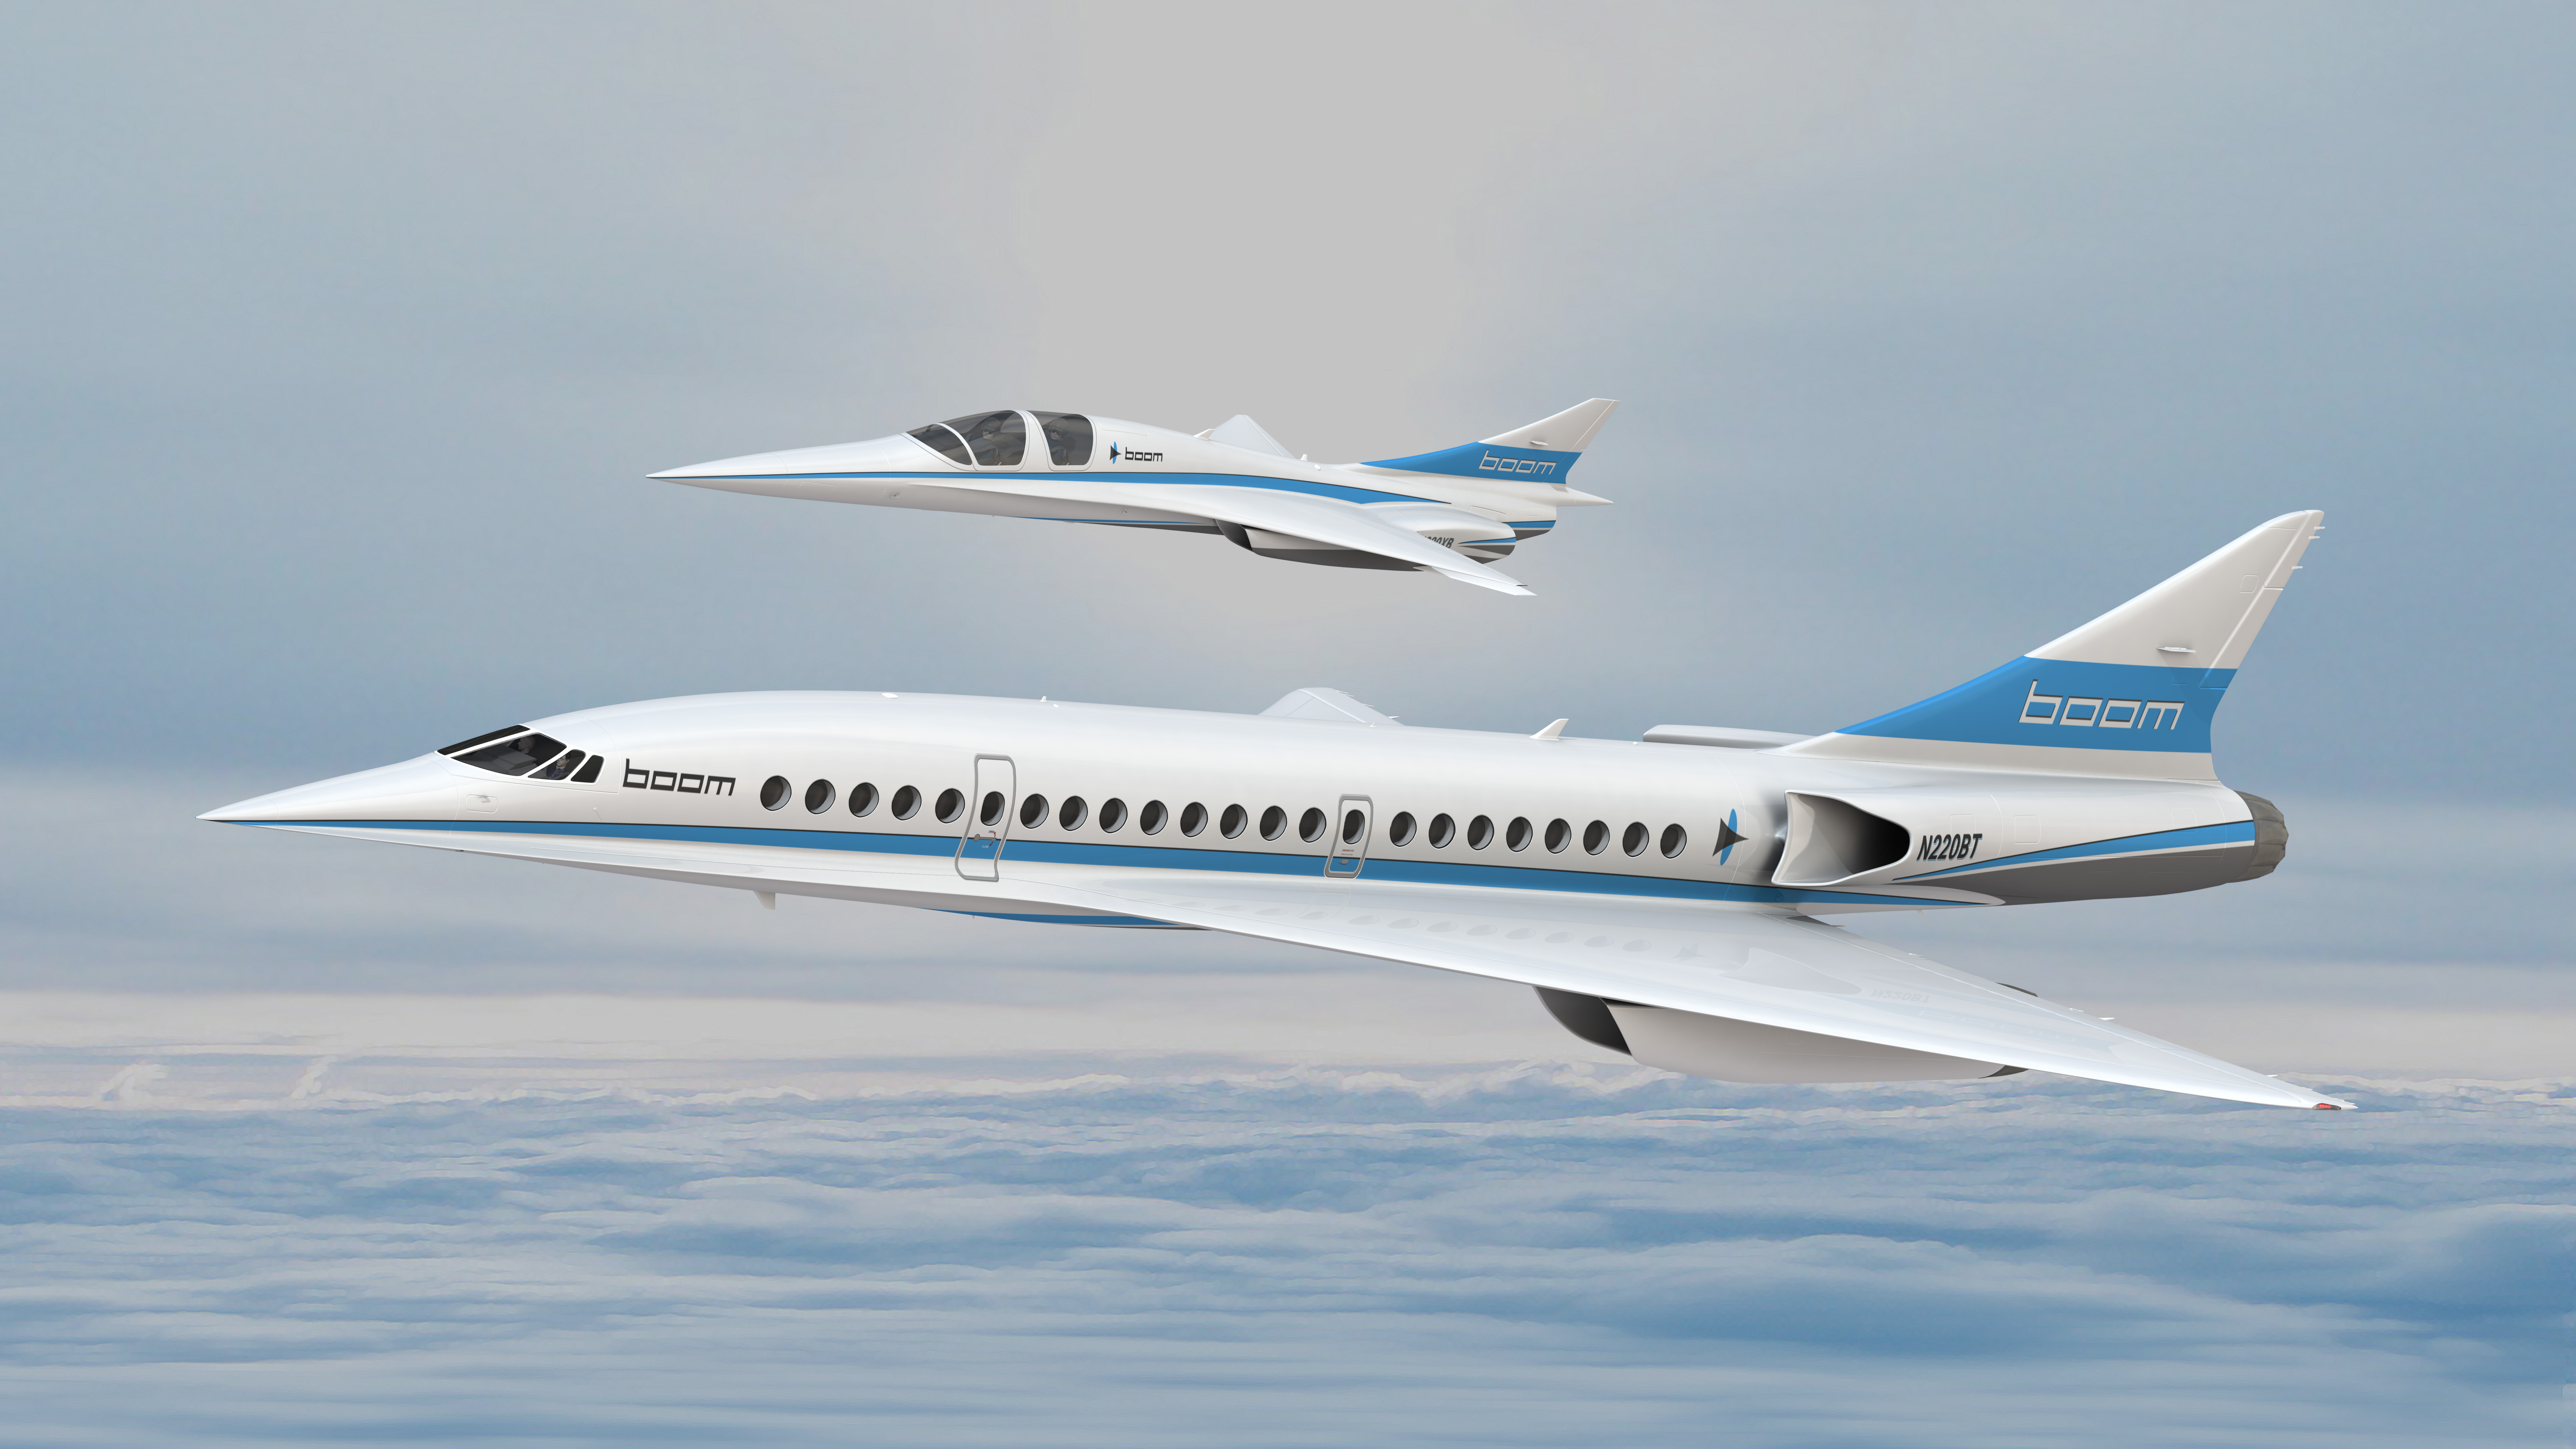 Richard Branson's Innovative Supersonic Jet For 2020